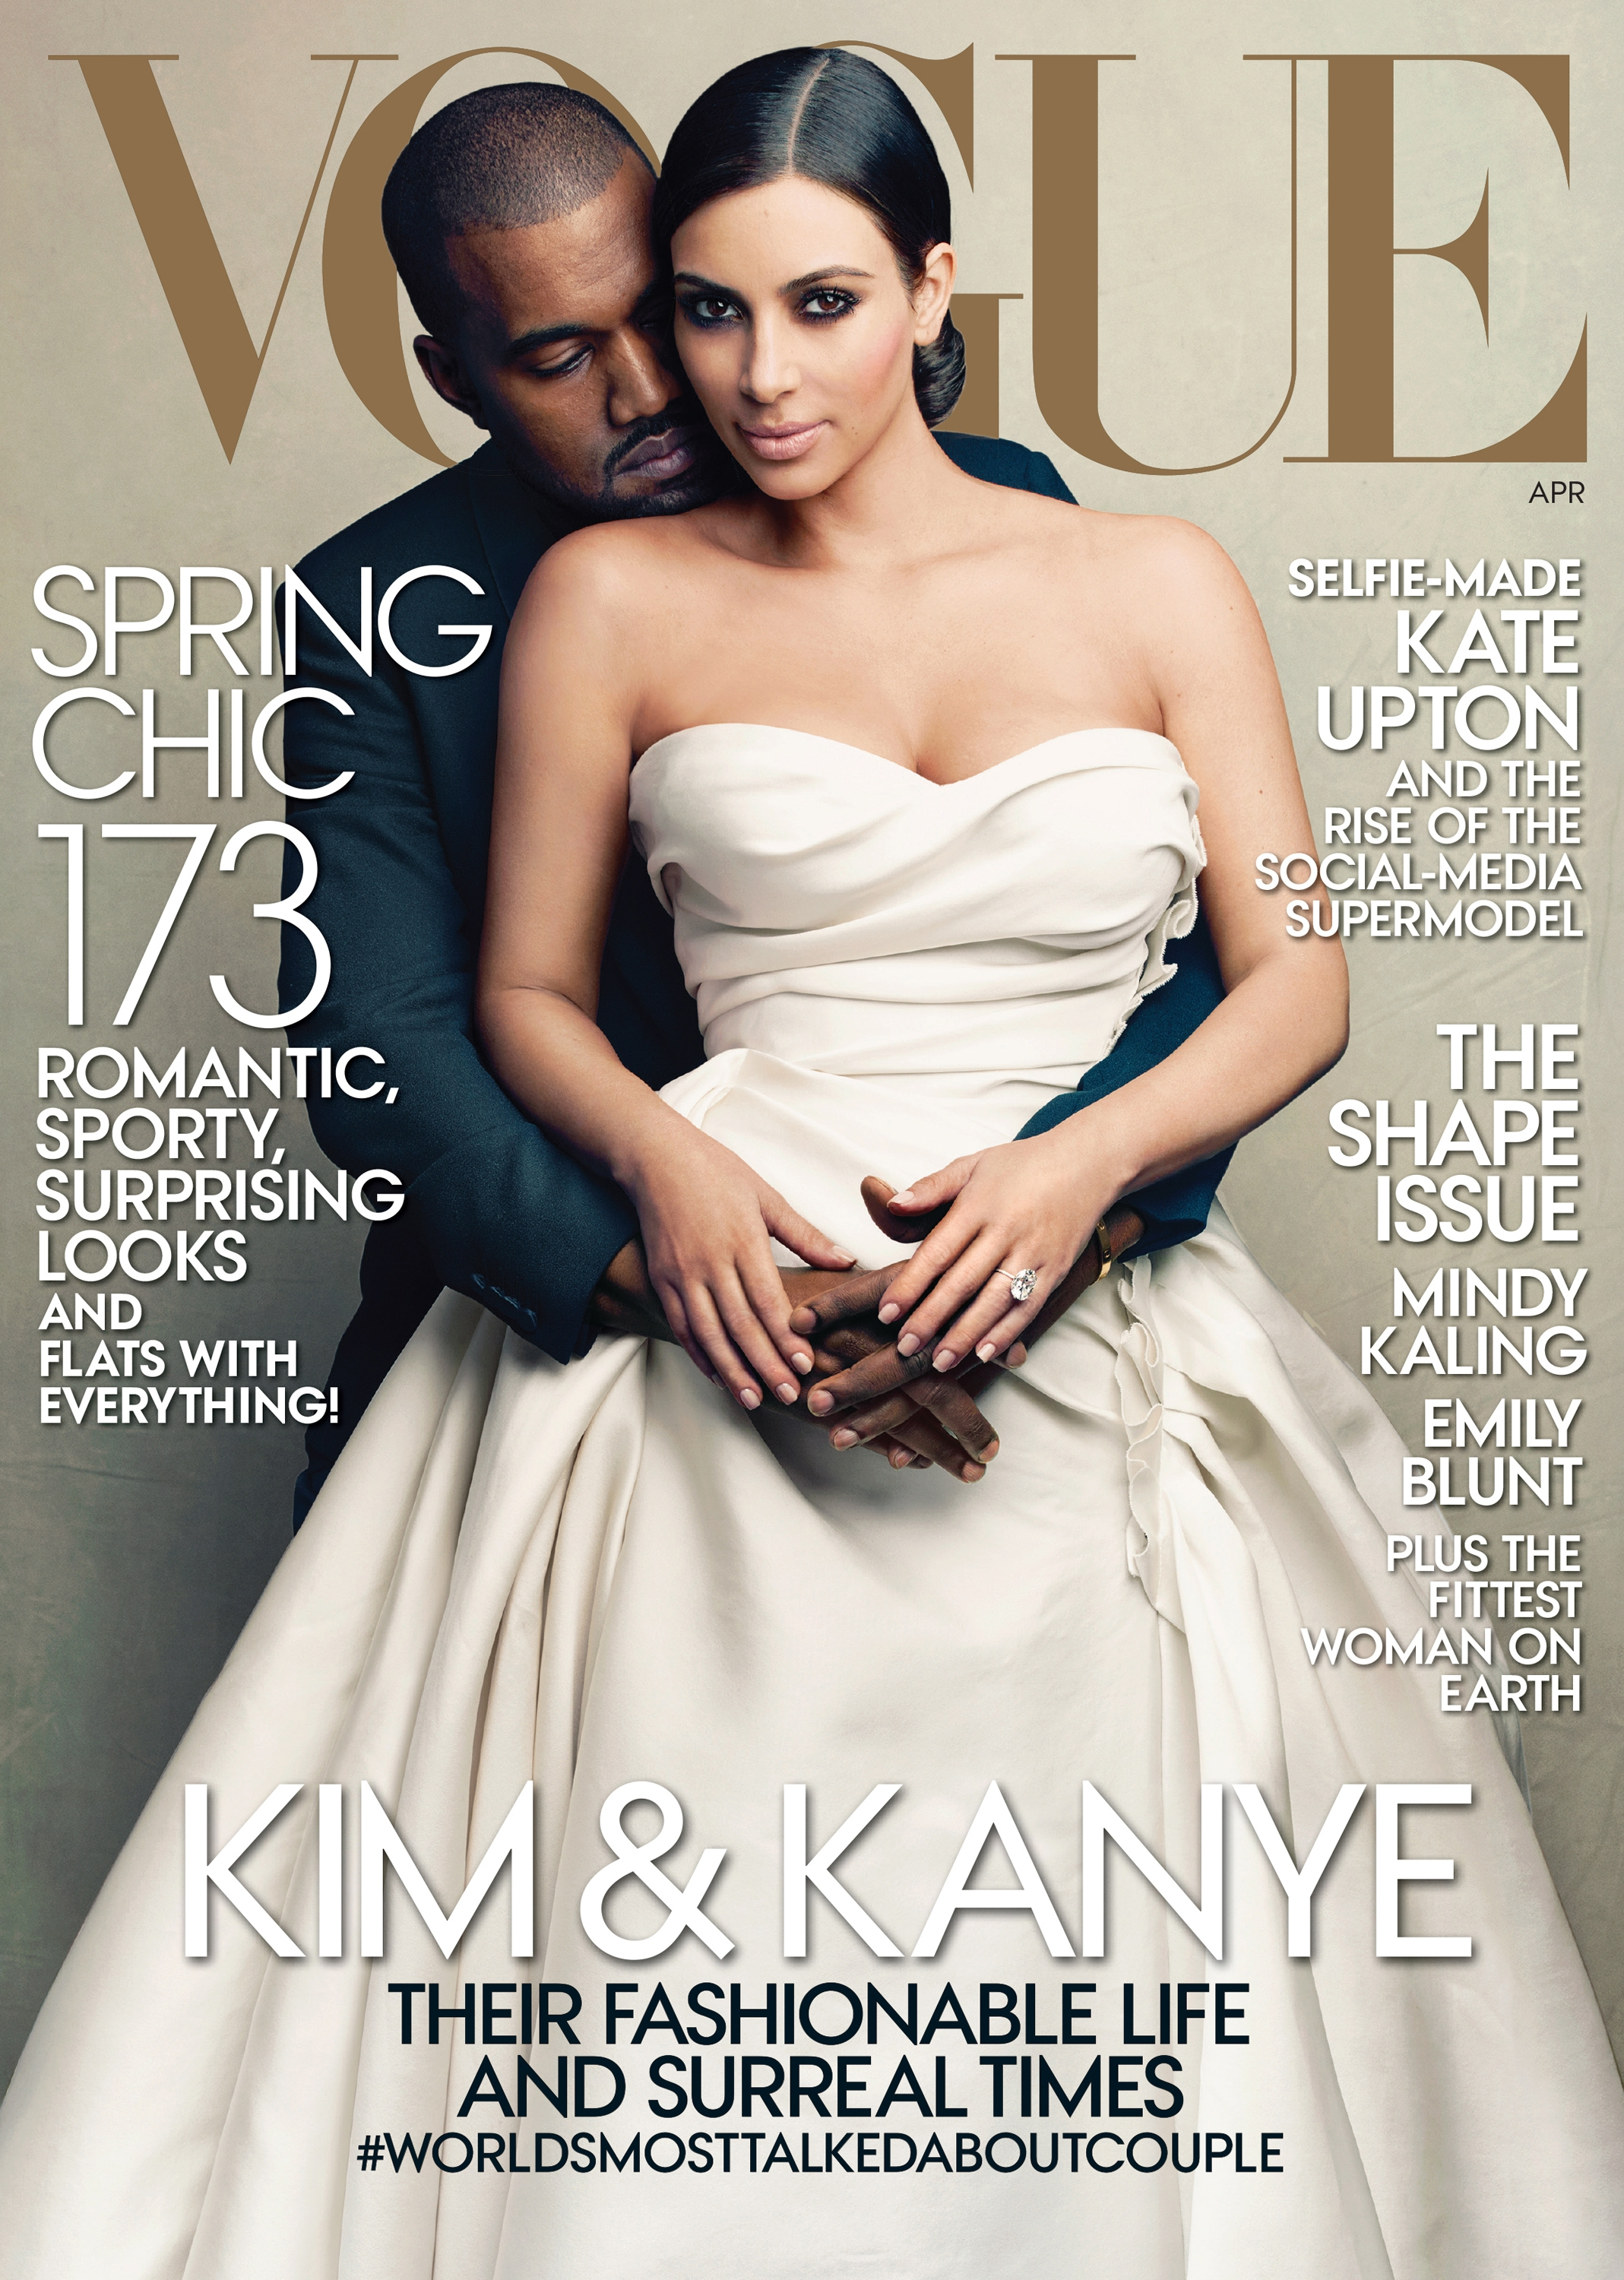 Annie Leibovitz took the cover shot for Vogue's April issue, which features Kanye West and Kim Kardashian.